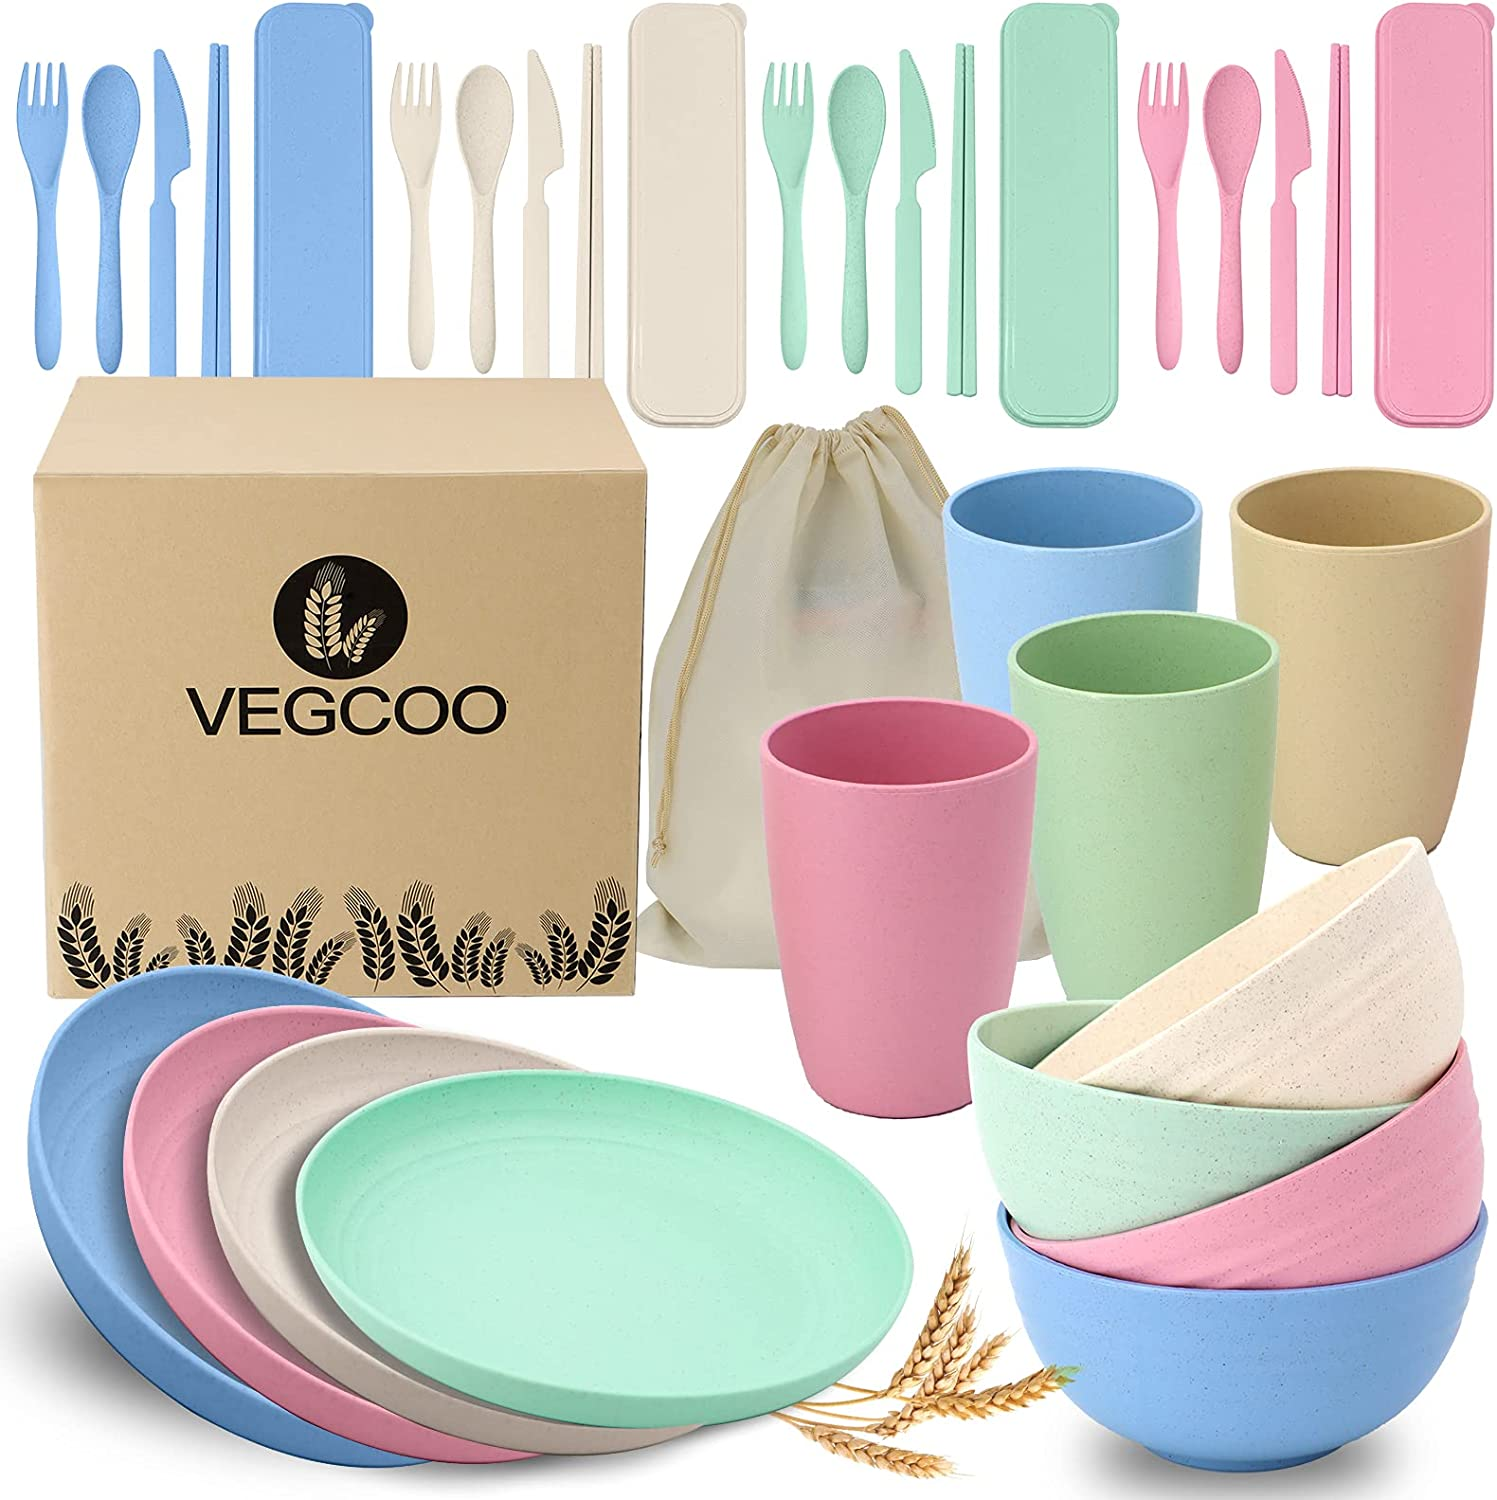 VEGCOO Wheat Straw Dinnerware Sets Lightweight 4 of and 55% OFF 32pcs security